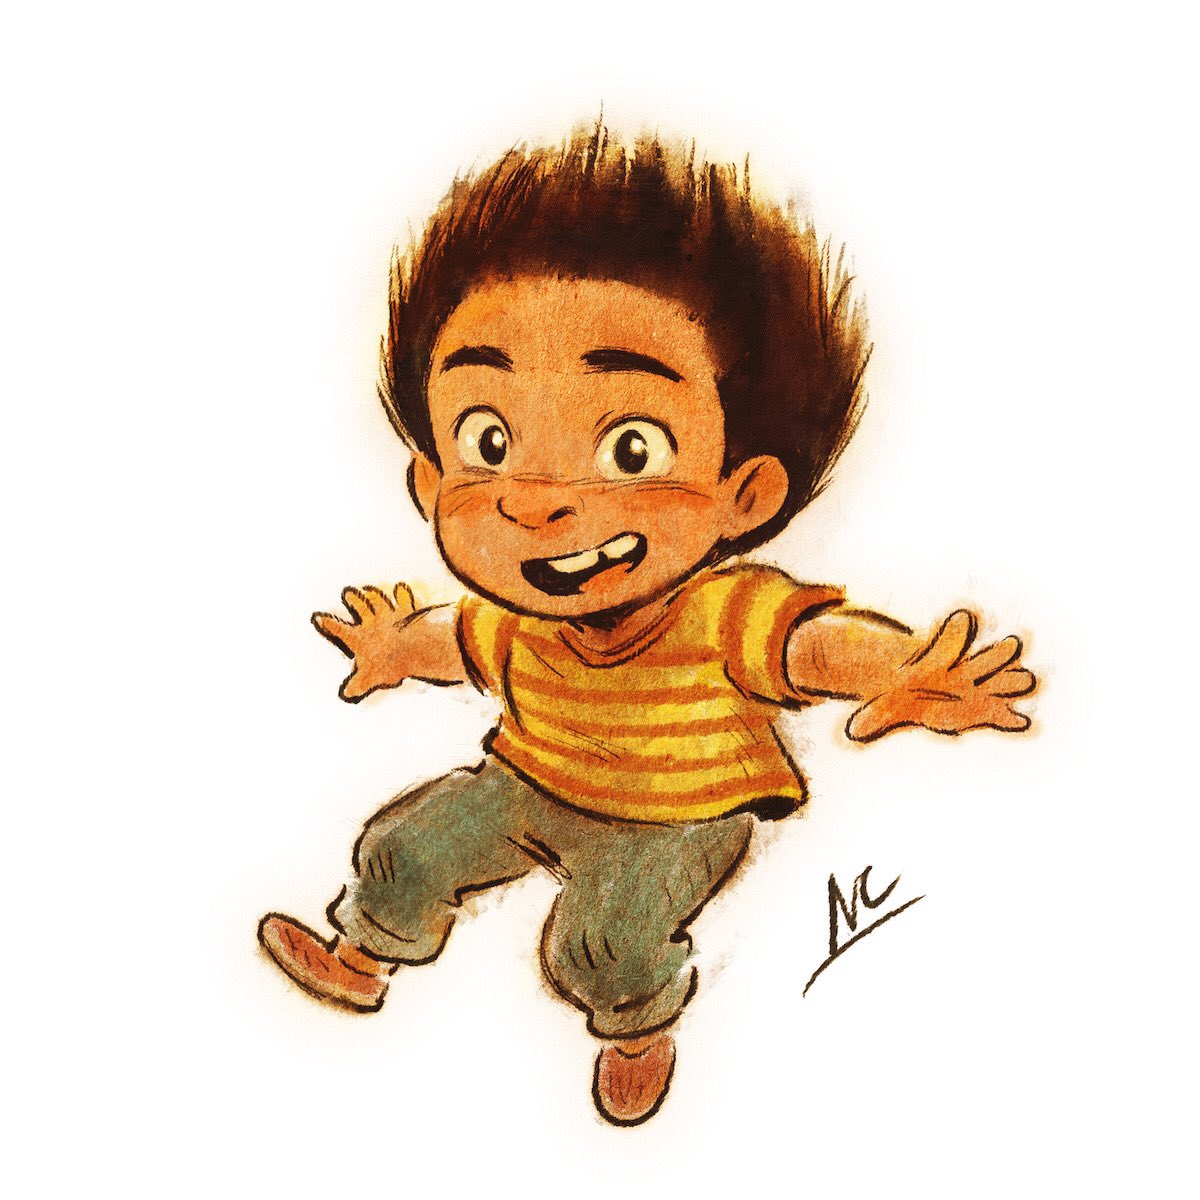 Happy Tuesday Everybody! Here's another adorable drawing of Alex from #PixarFloat made by the super talented #NicolleCastro! @ncdooodles Nicolle is a #Pixar #StoryArtist and has worked on #ToyStory4 #Luca...   https://t.co/f7sAJdPkkL  Happy #FilipinoAmericanHistoryMonth! 🇵🇭🇺🇸❤️ https://t.co/rEIJkSCMBN